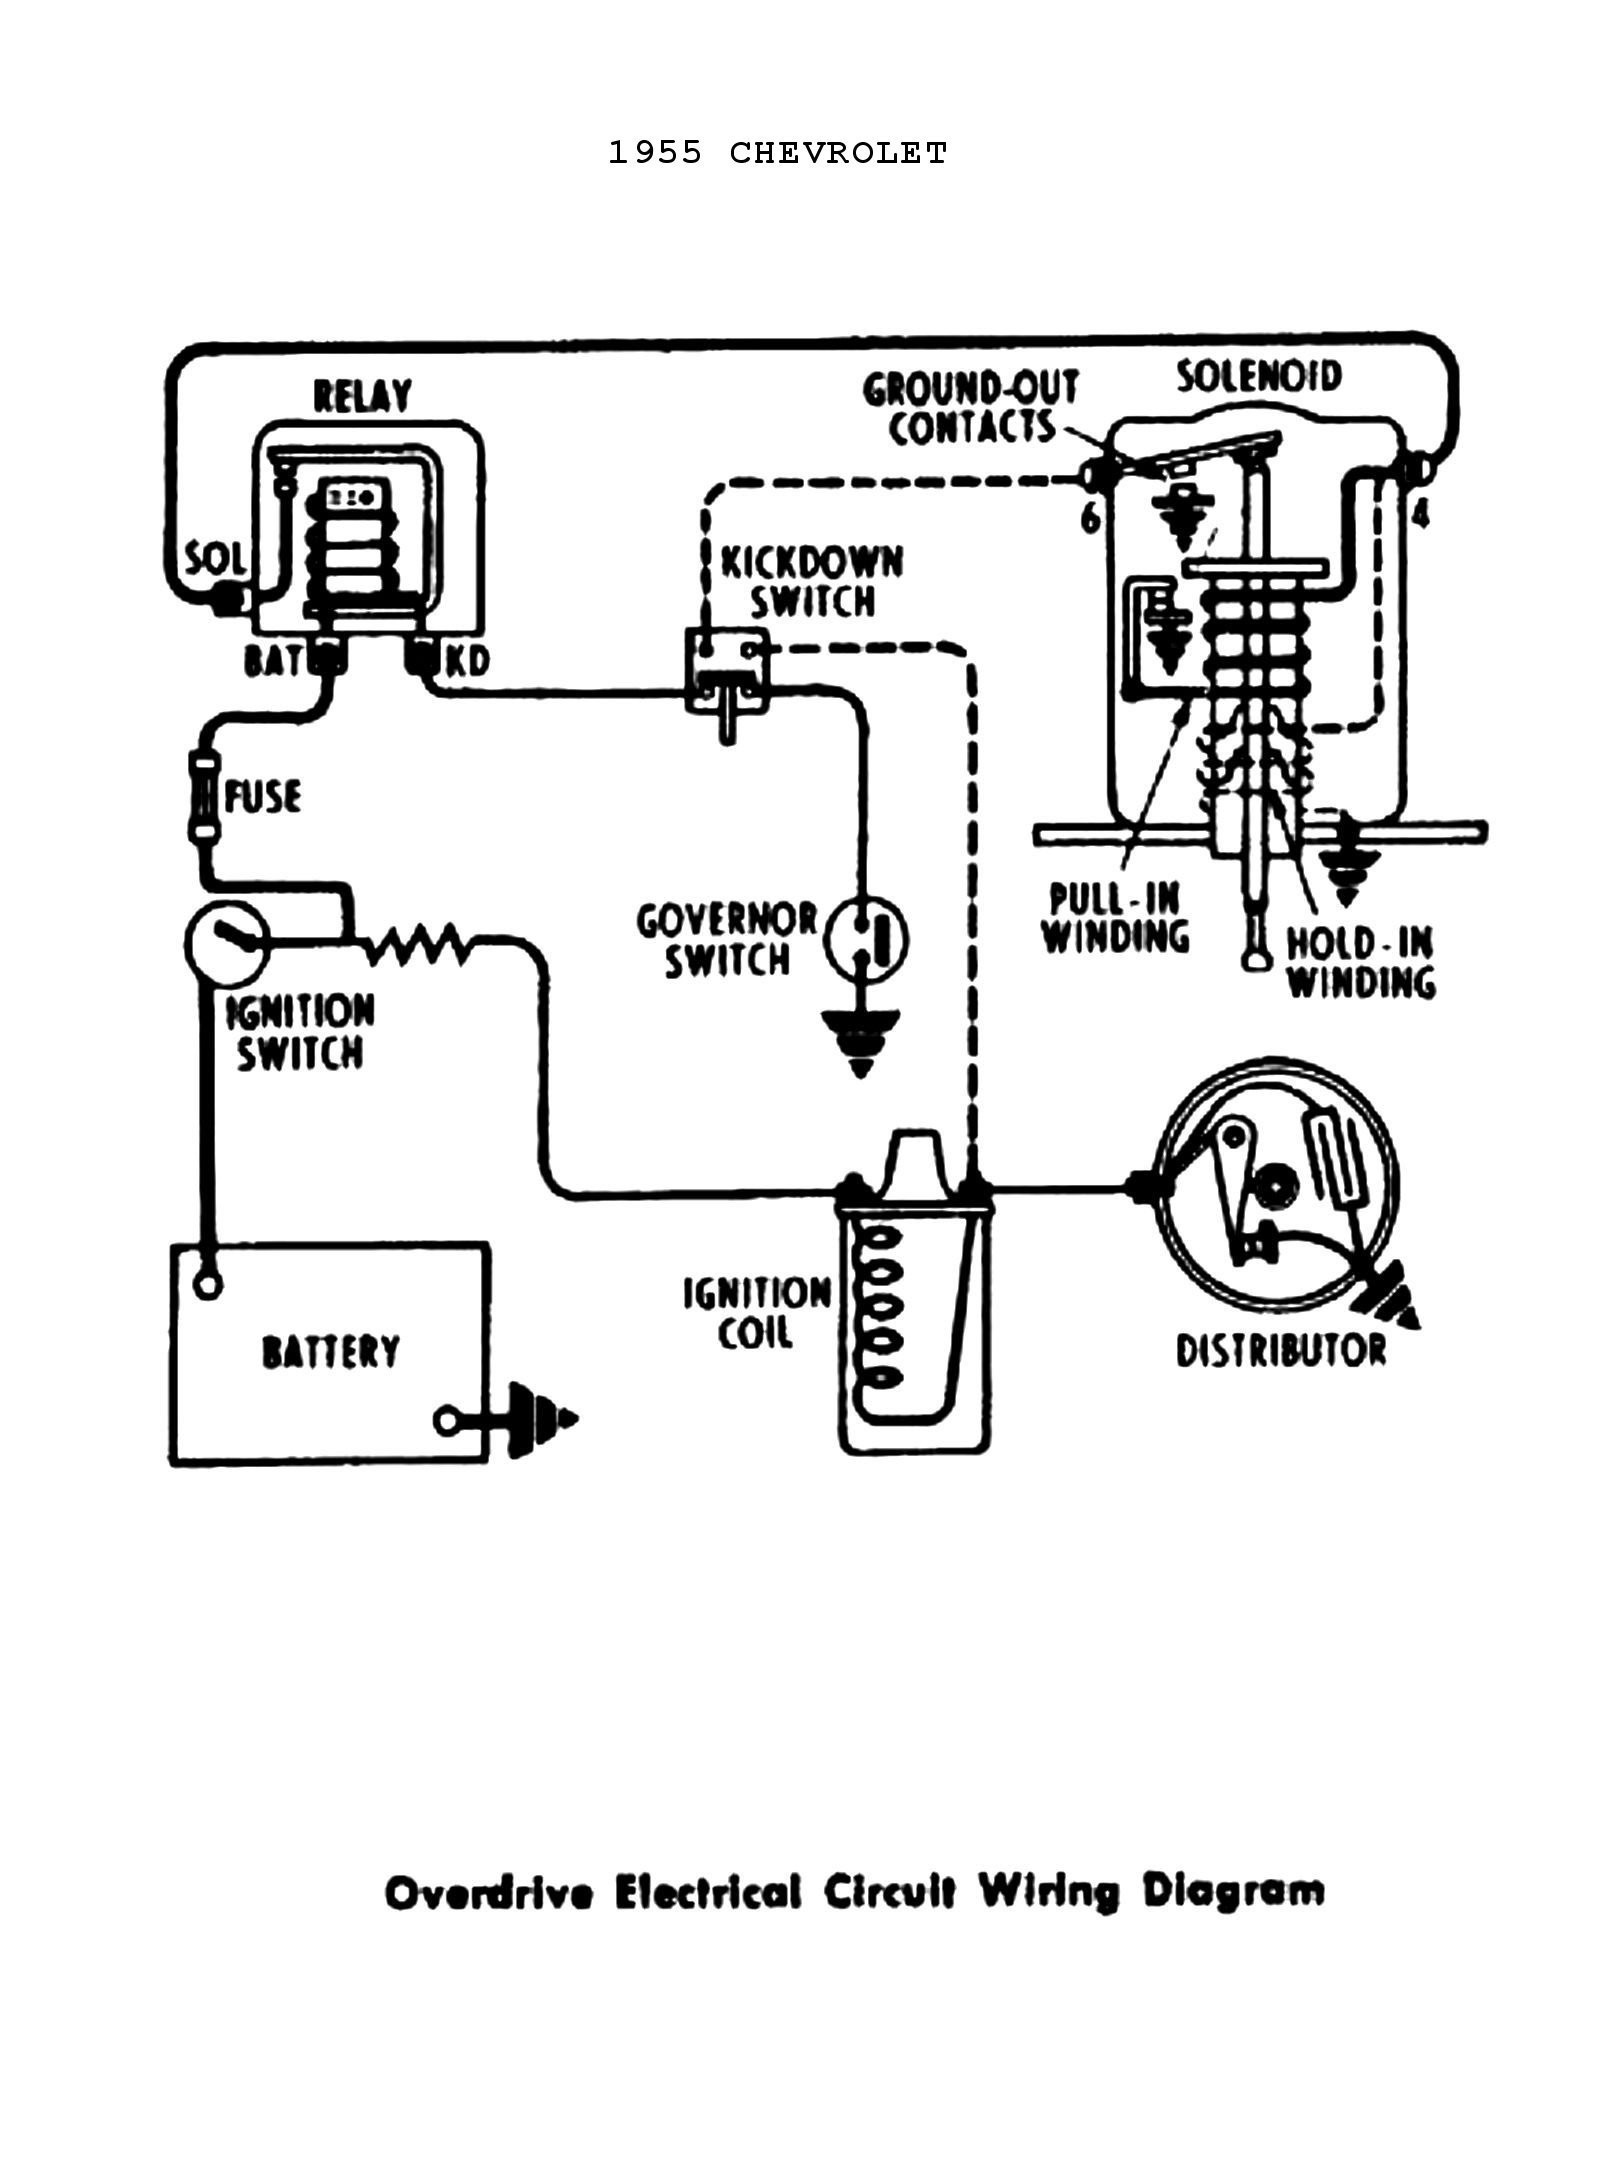 Coil Ignition System Diagram Wiring Diagram the Ignition System Valid Ignition Switch Wiring Of Coil Ignition System Diagram Ignition System Troubleshooting Wiring Diagram Fresh S10 Ignition